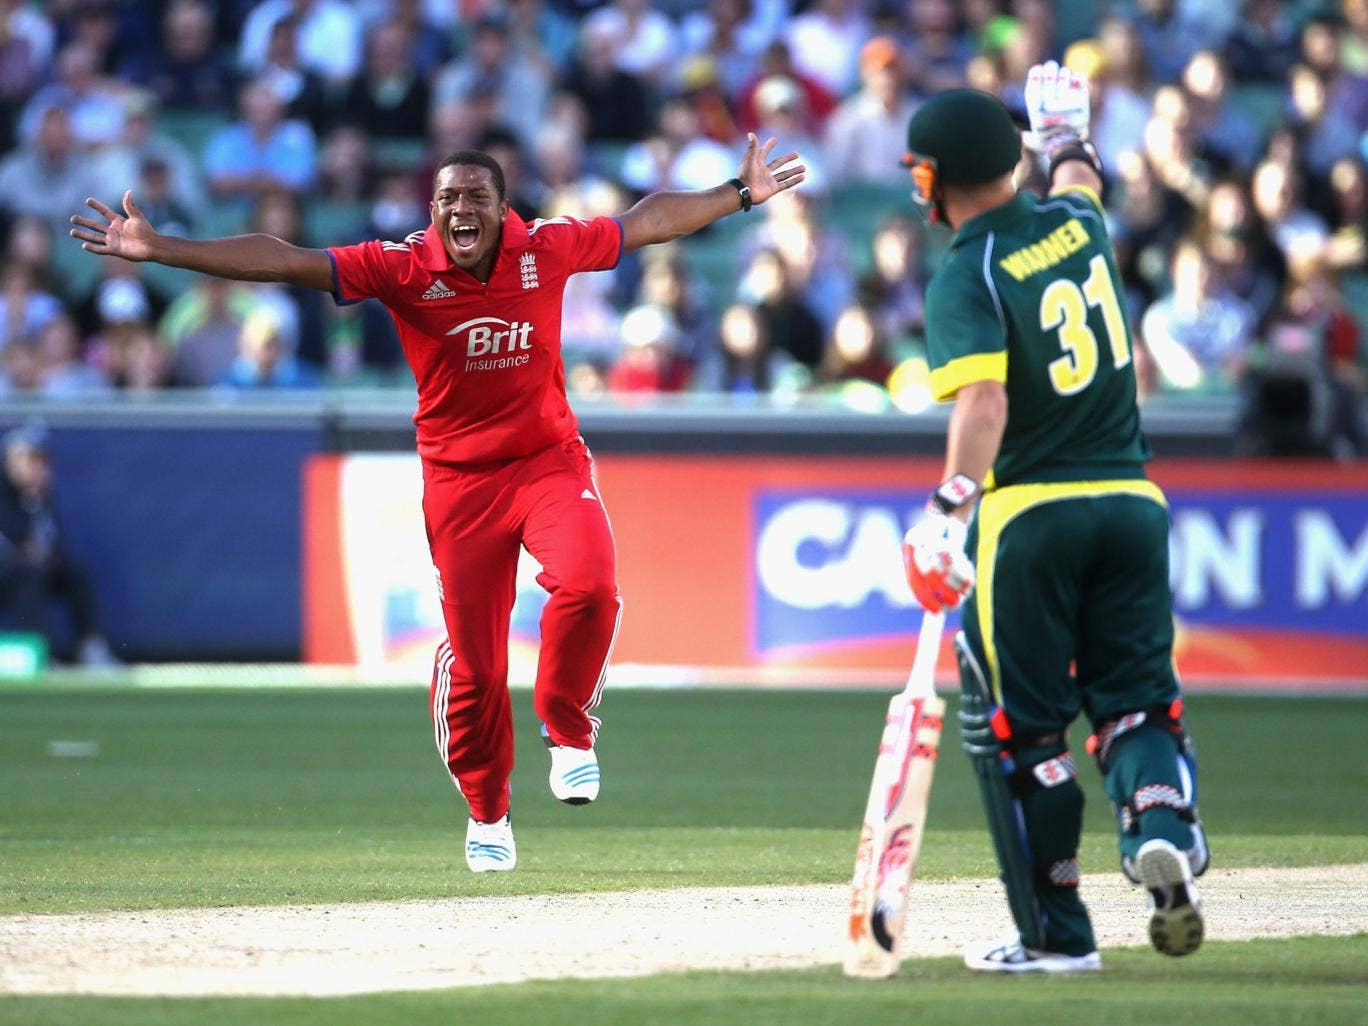 Chris Jordan appeals for an lbw decision during the first one-dayer against Australia